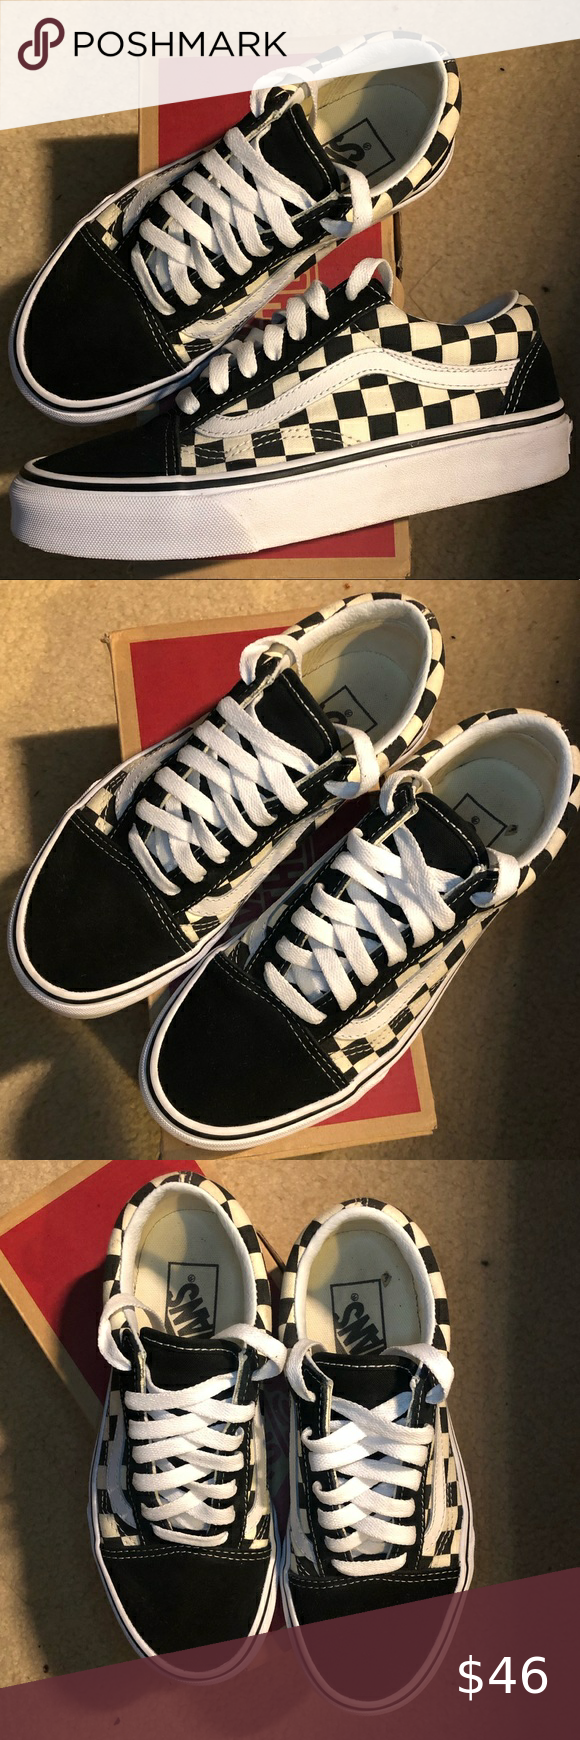 youth size 4 checkered vans